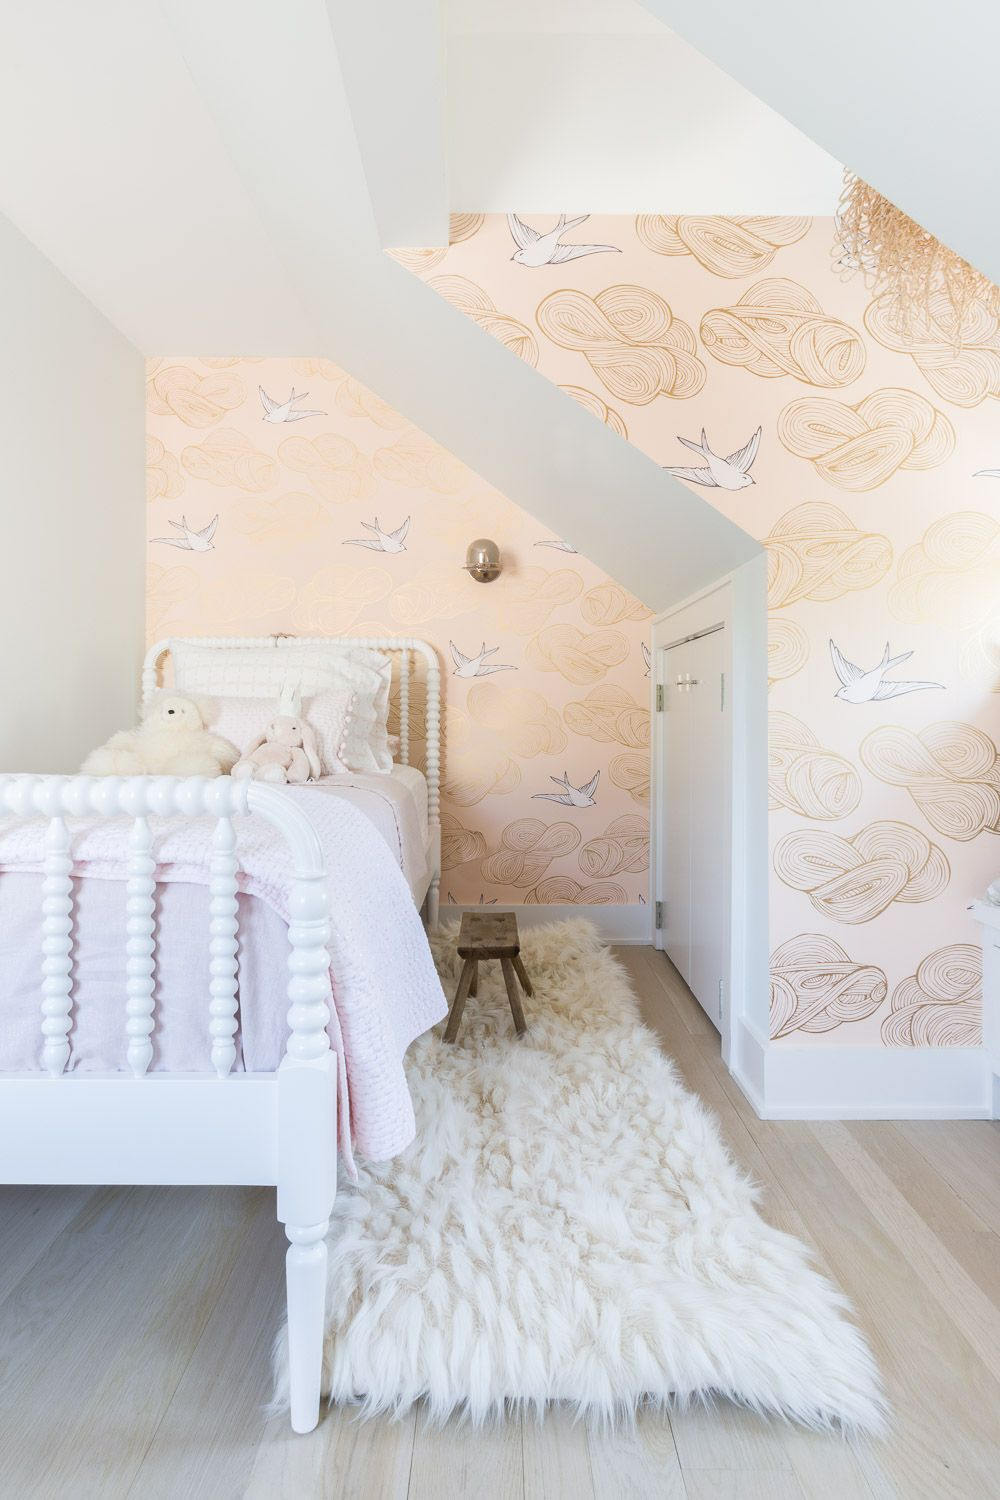 15 creative girls room ideas how to decorate a girl s bedroom rh elledecor com  unique baby girl room ideas